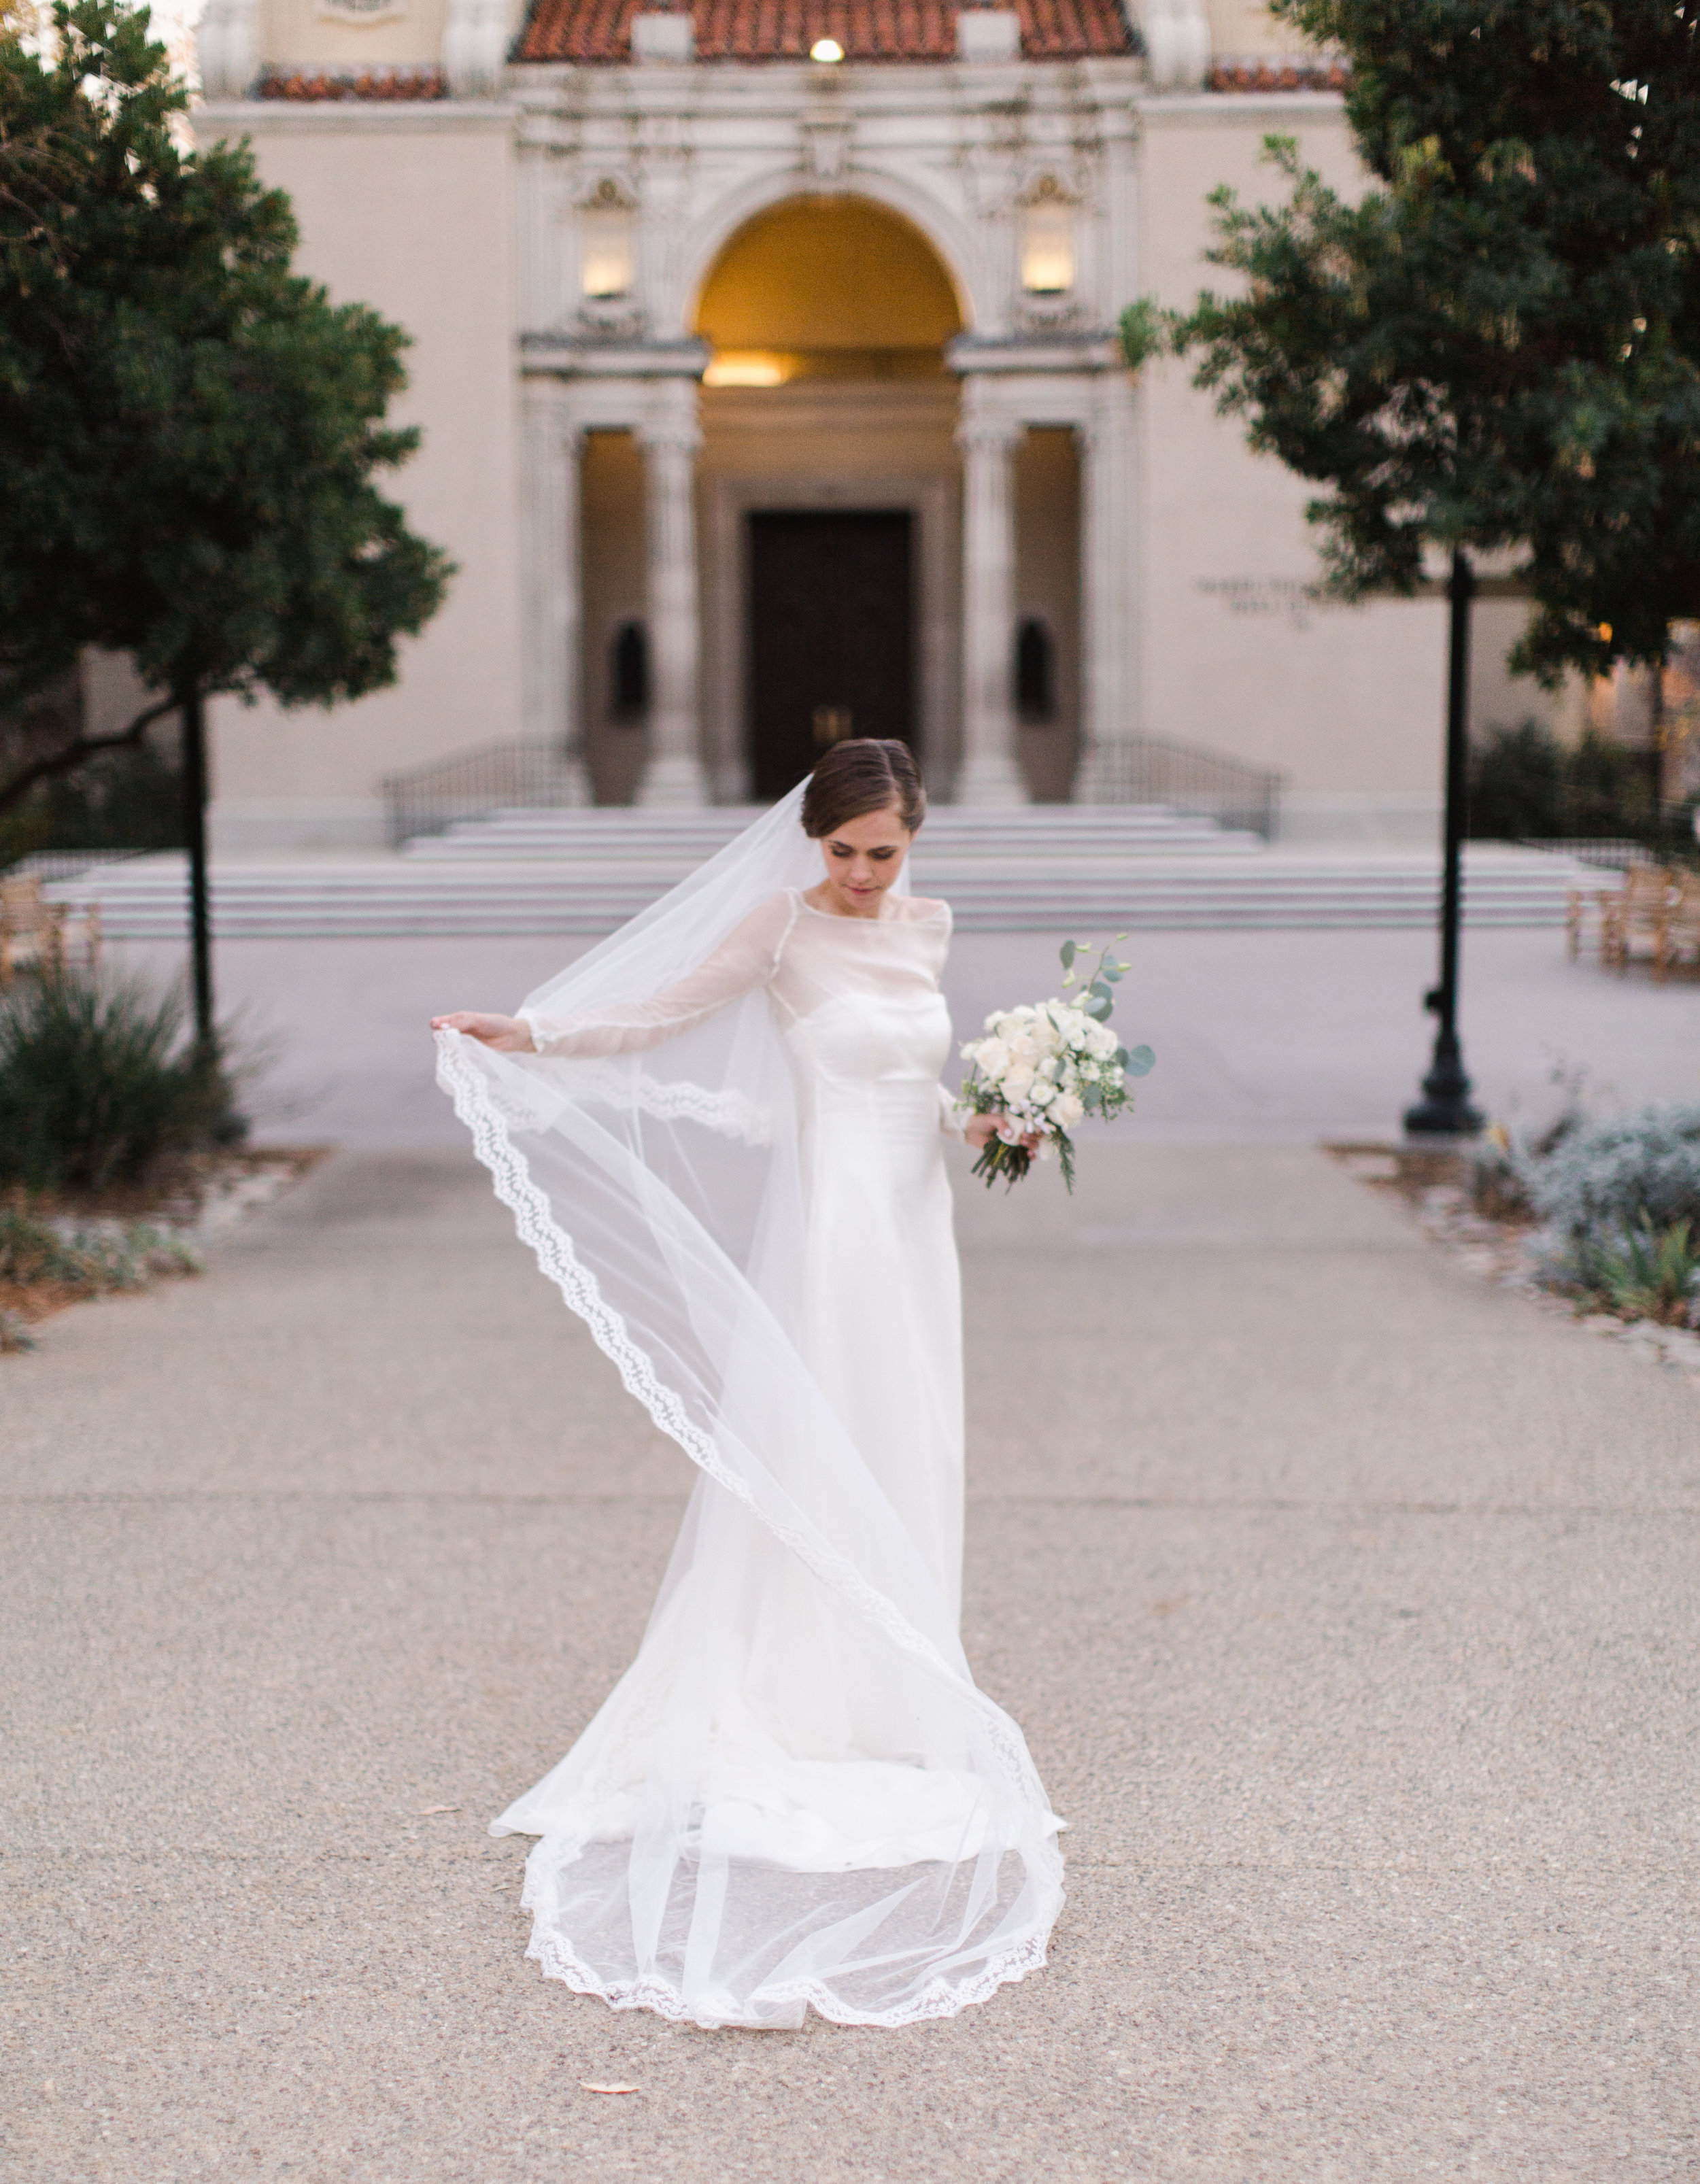 Bridal Looks | Veil Shot | Southern California Romantic Wedding Near Their Home | Unions With Celia | Amy & Darren Photography |